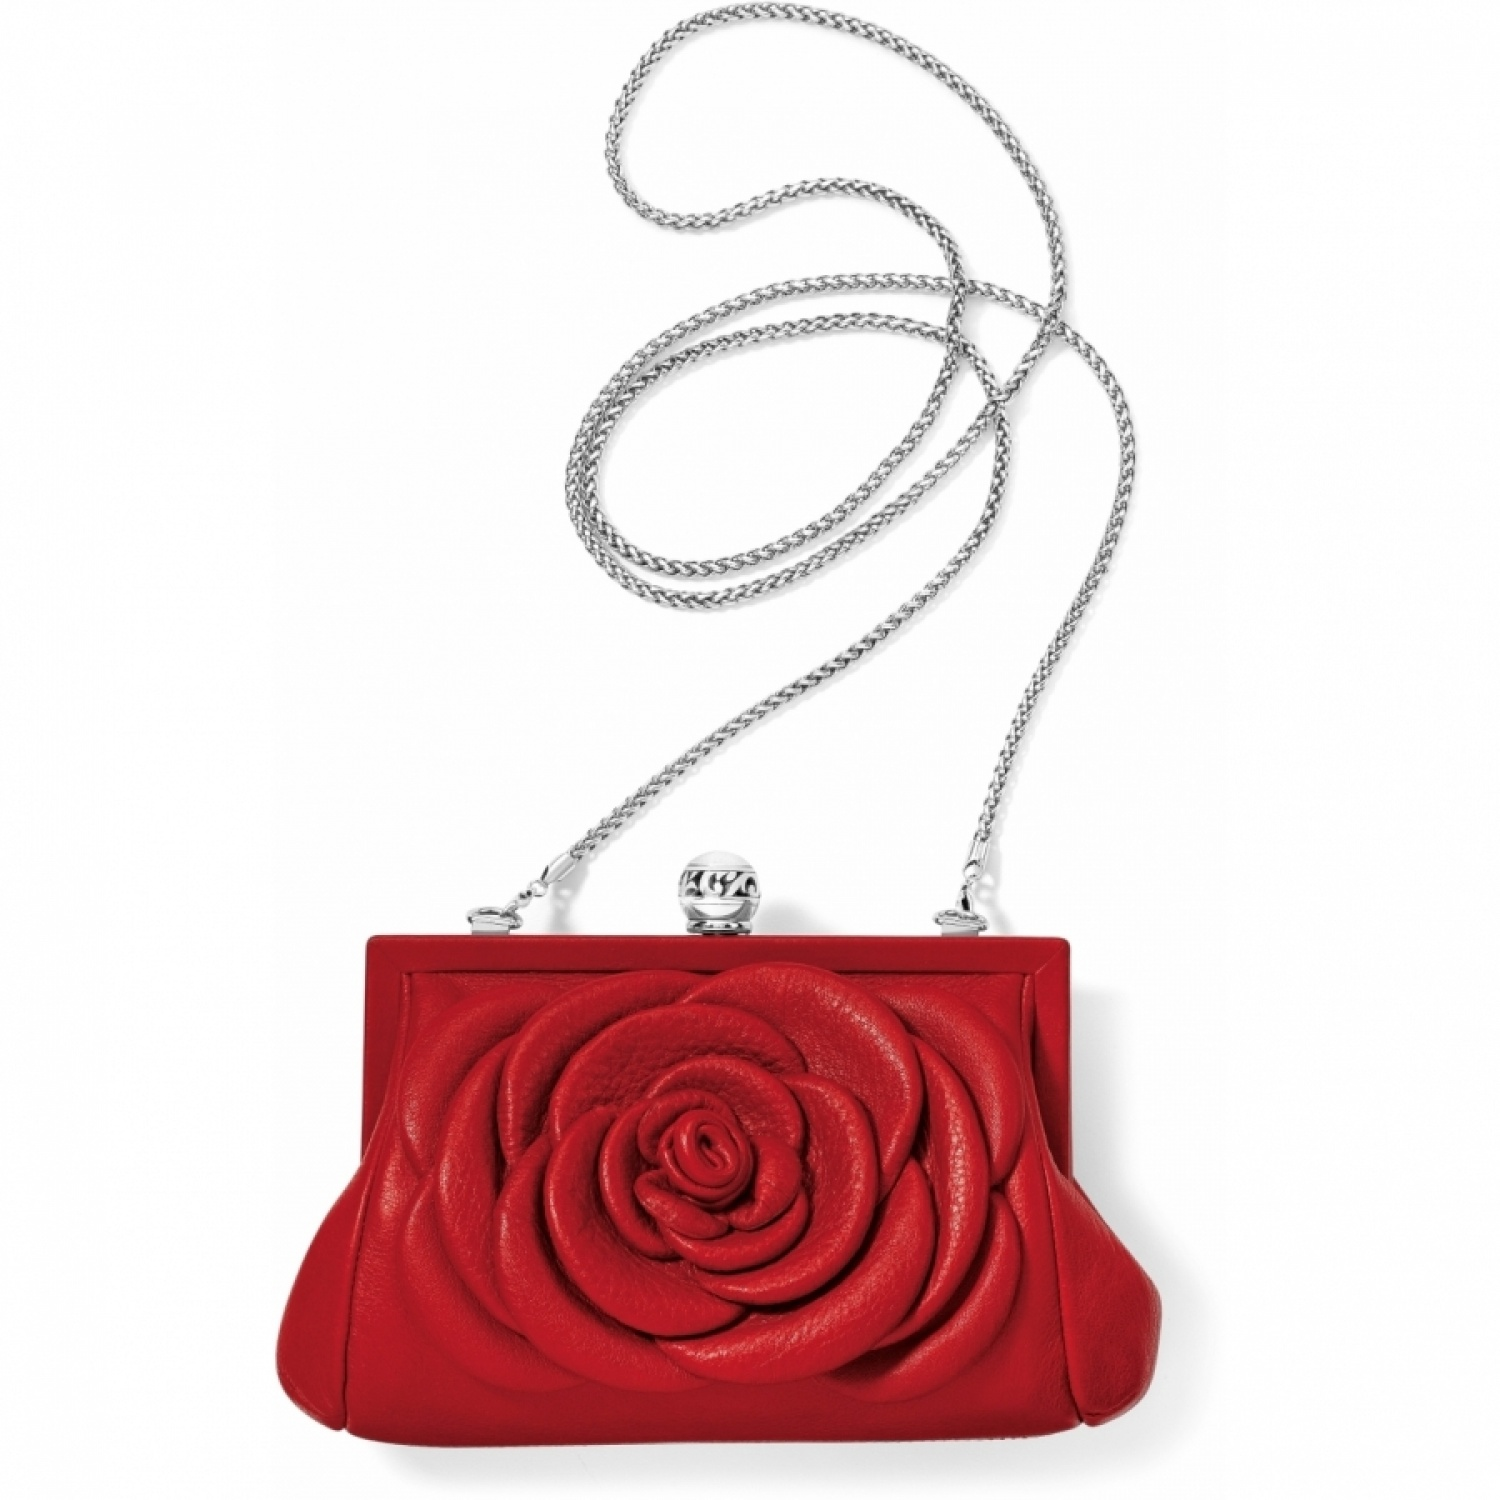 Small Handbags for Women - Small Leather Bags | Brighton Collectibles